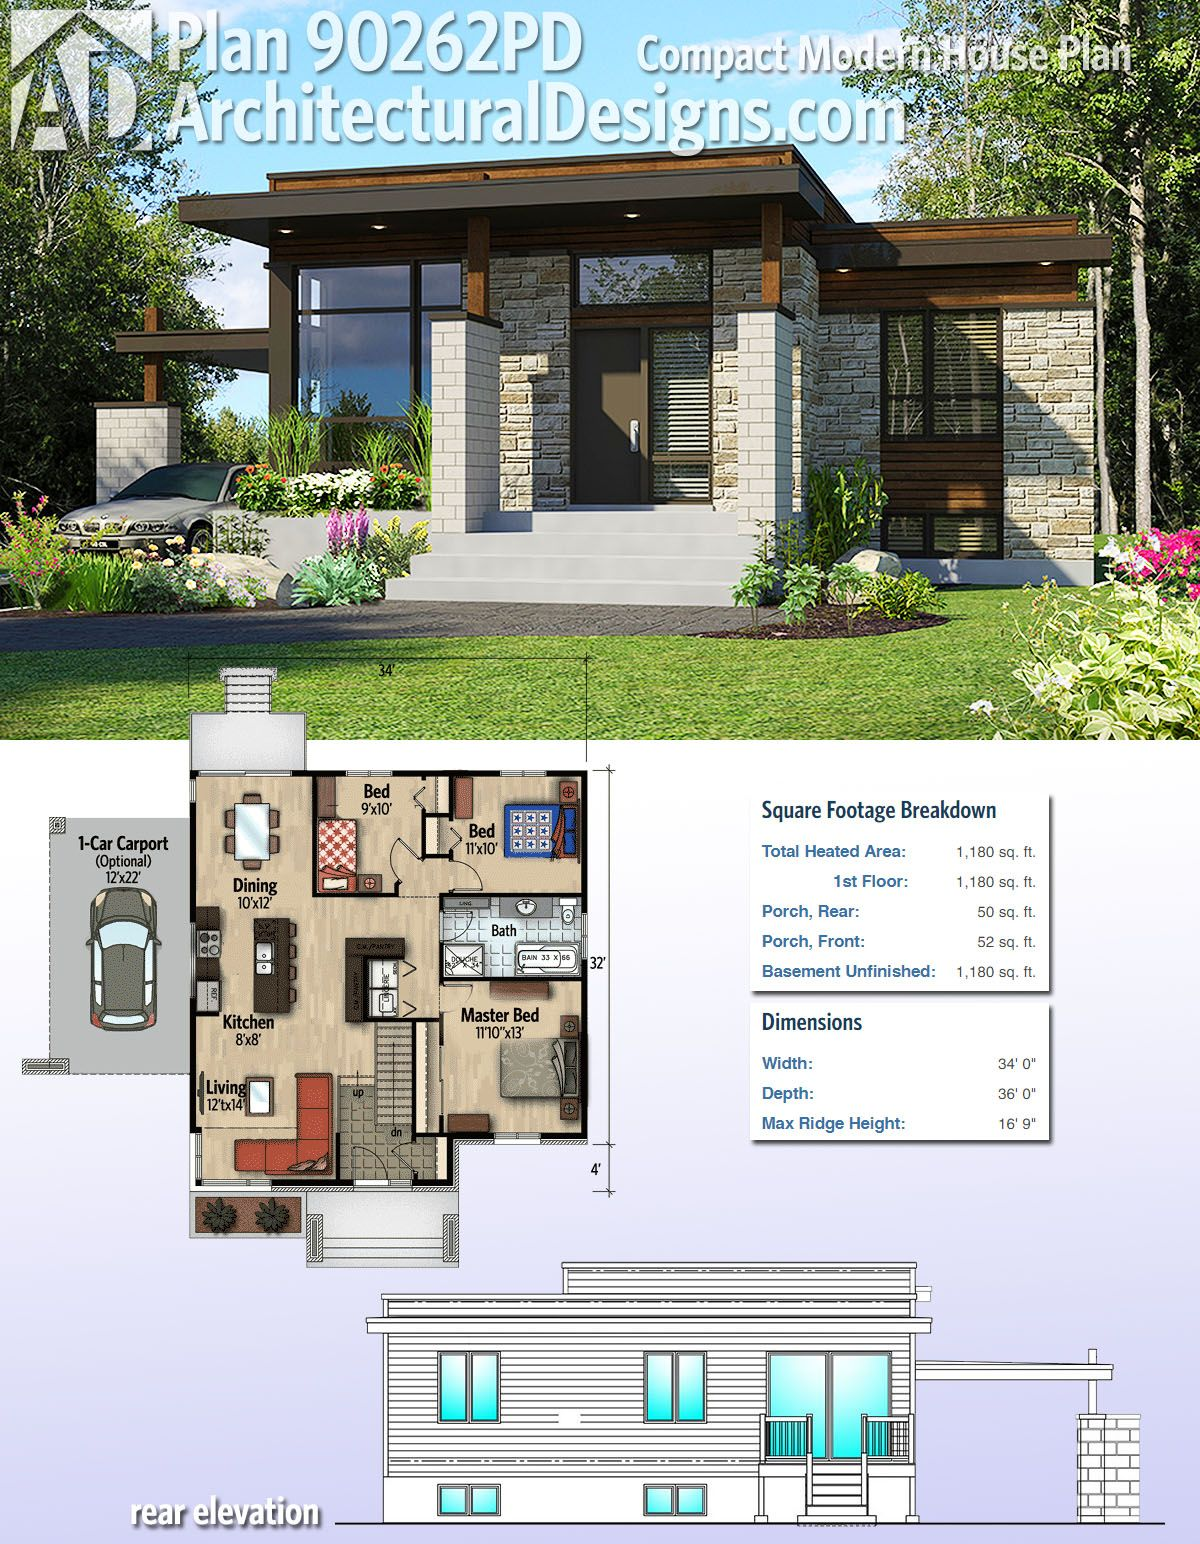 Architectural Designs Compact Modern House Plan 90262pd